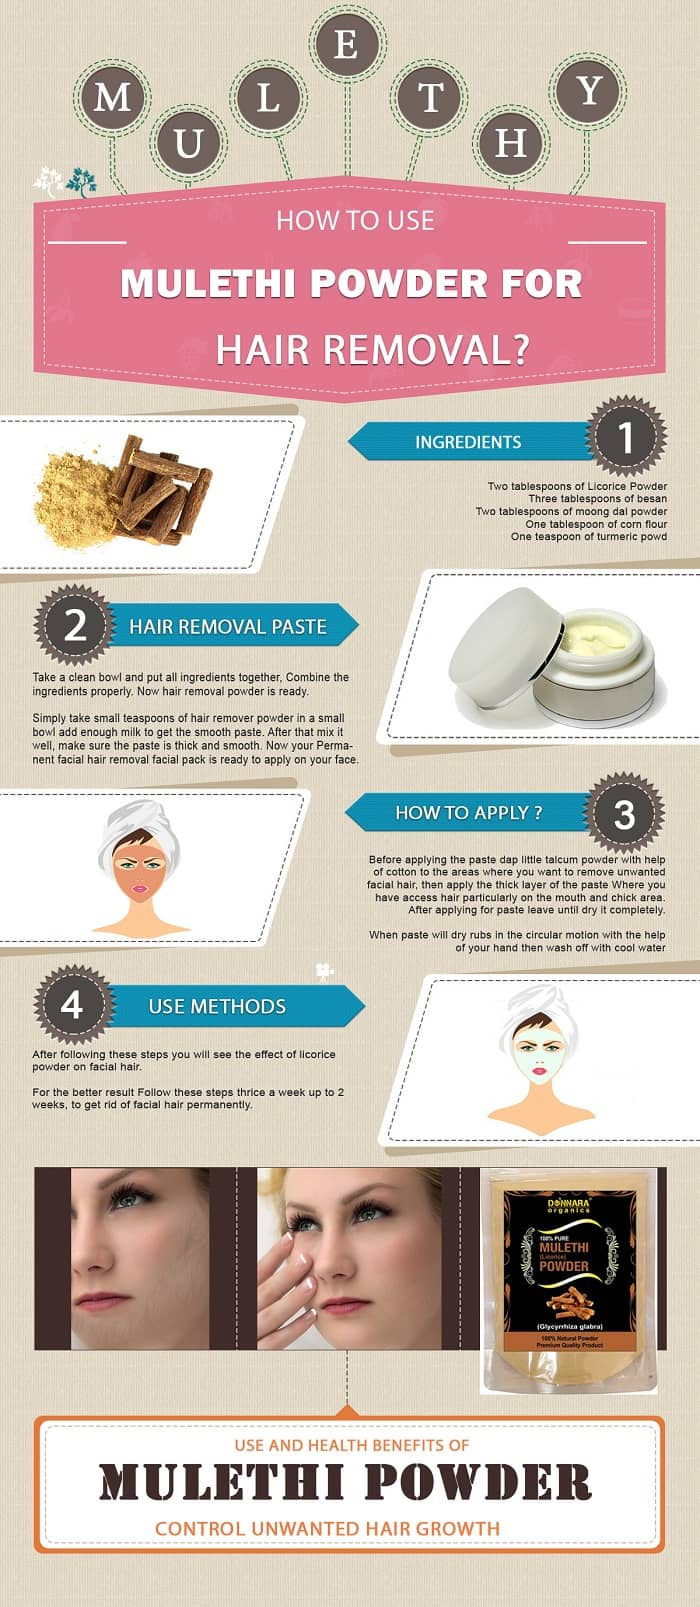 How To Use Mulethi Powder For Hair Removal In 2020 Permanent